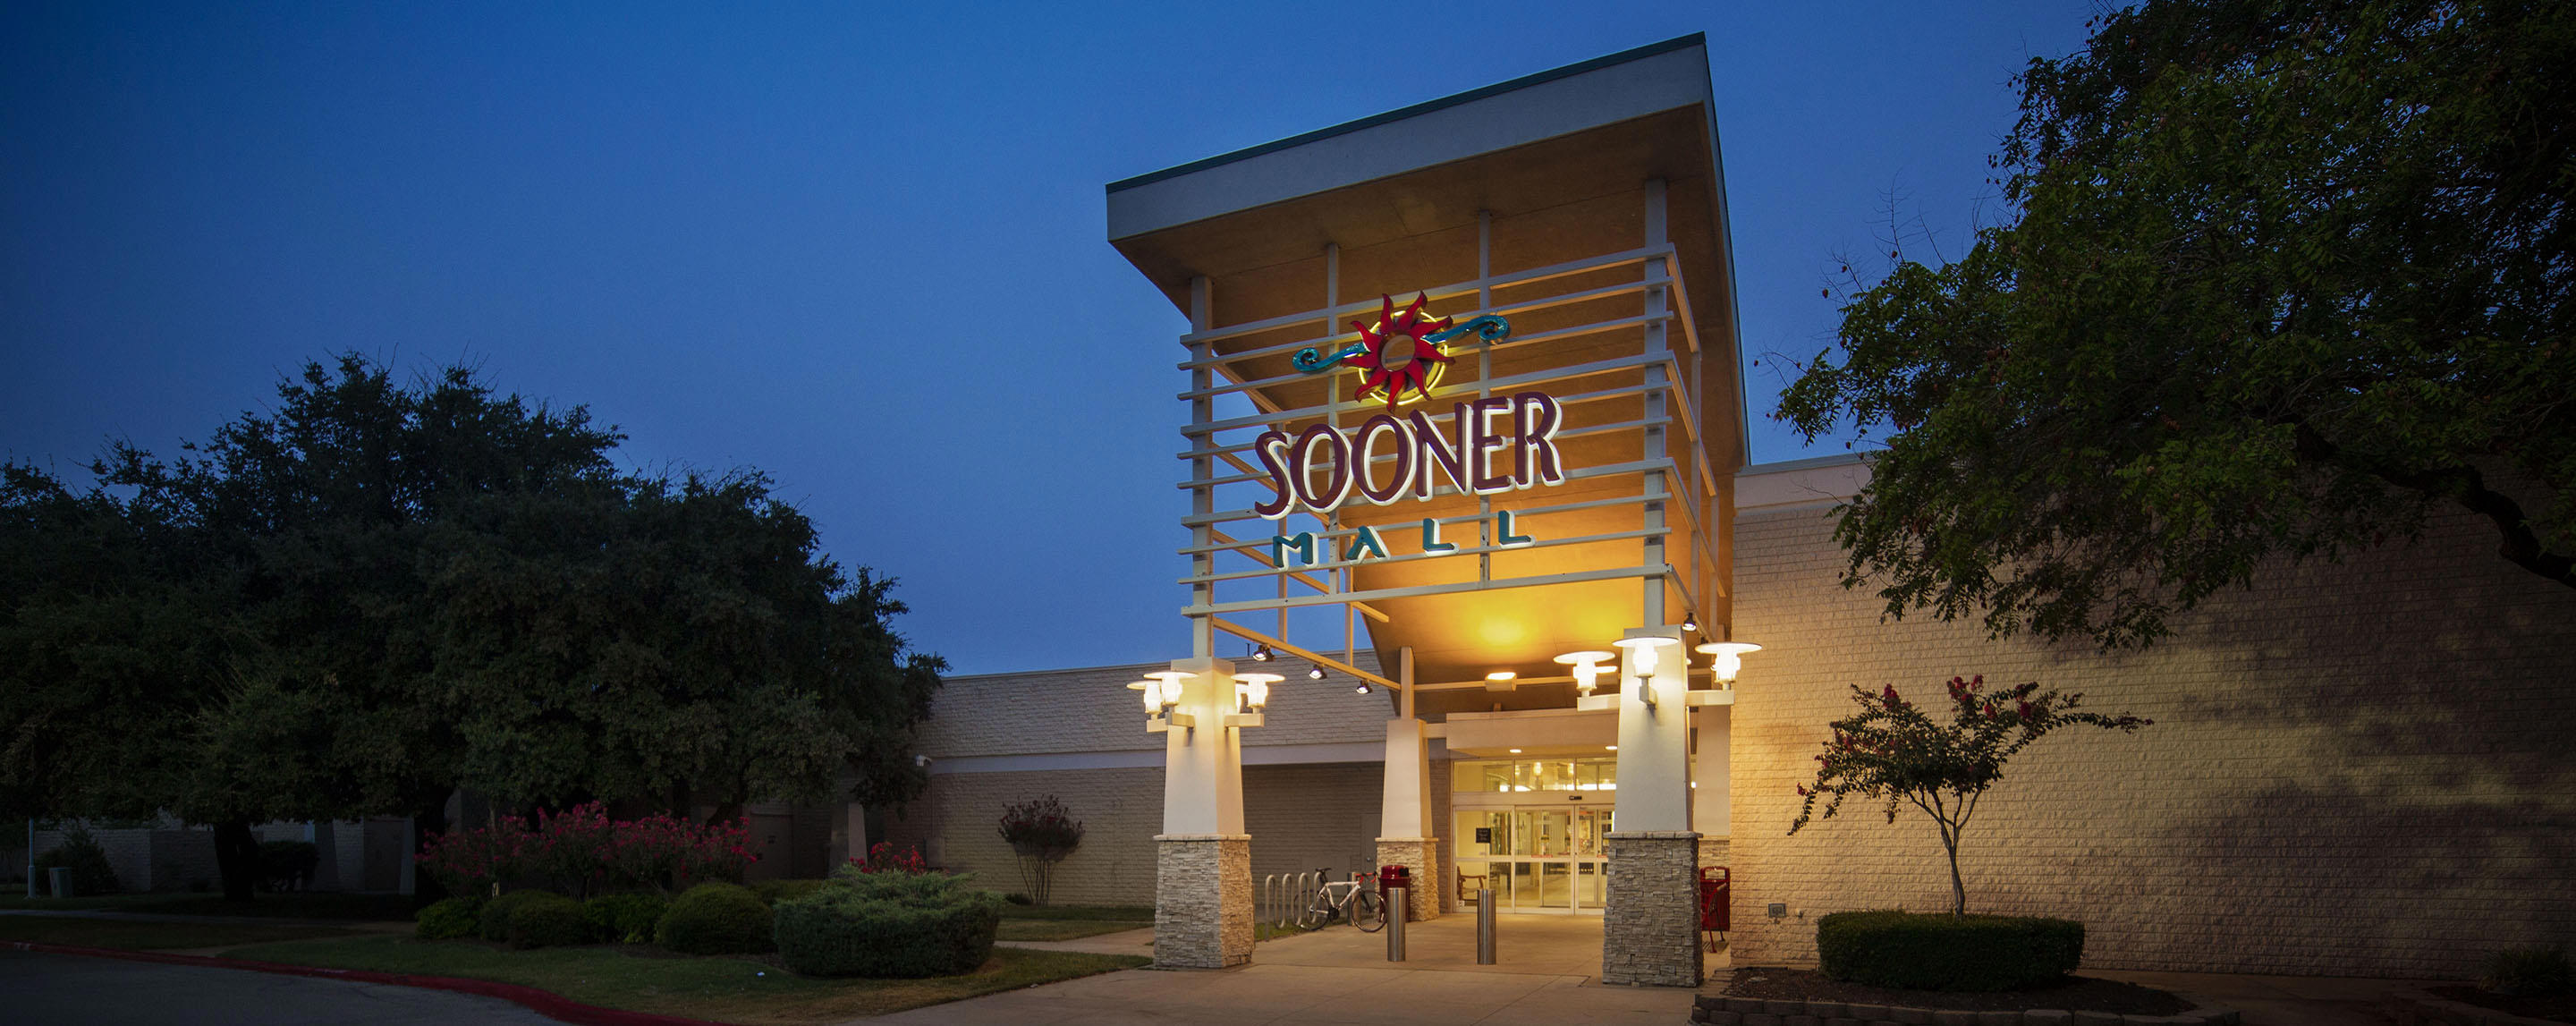 The Sooner Mall sign at an exterior entrance is lit up at dusk.